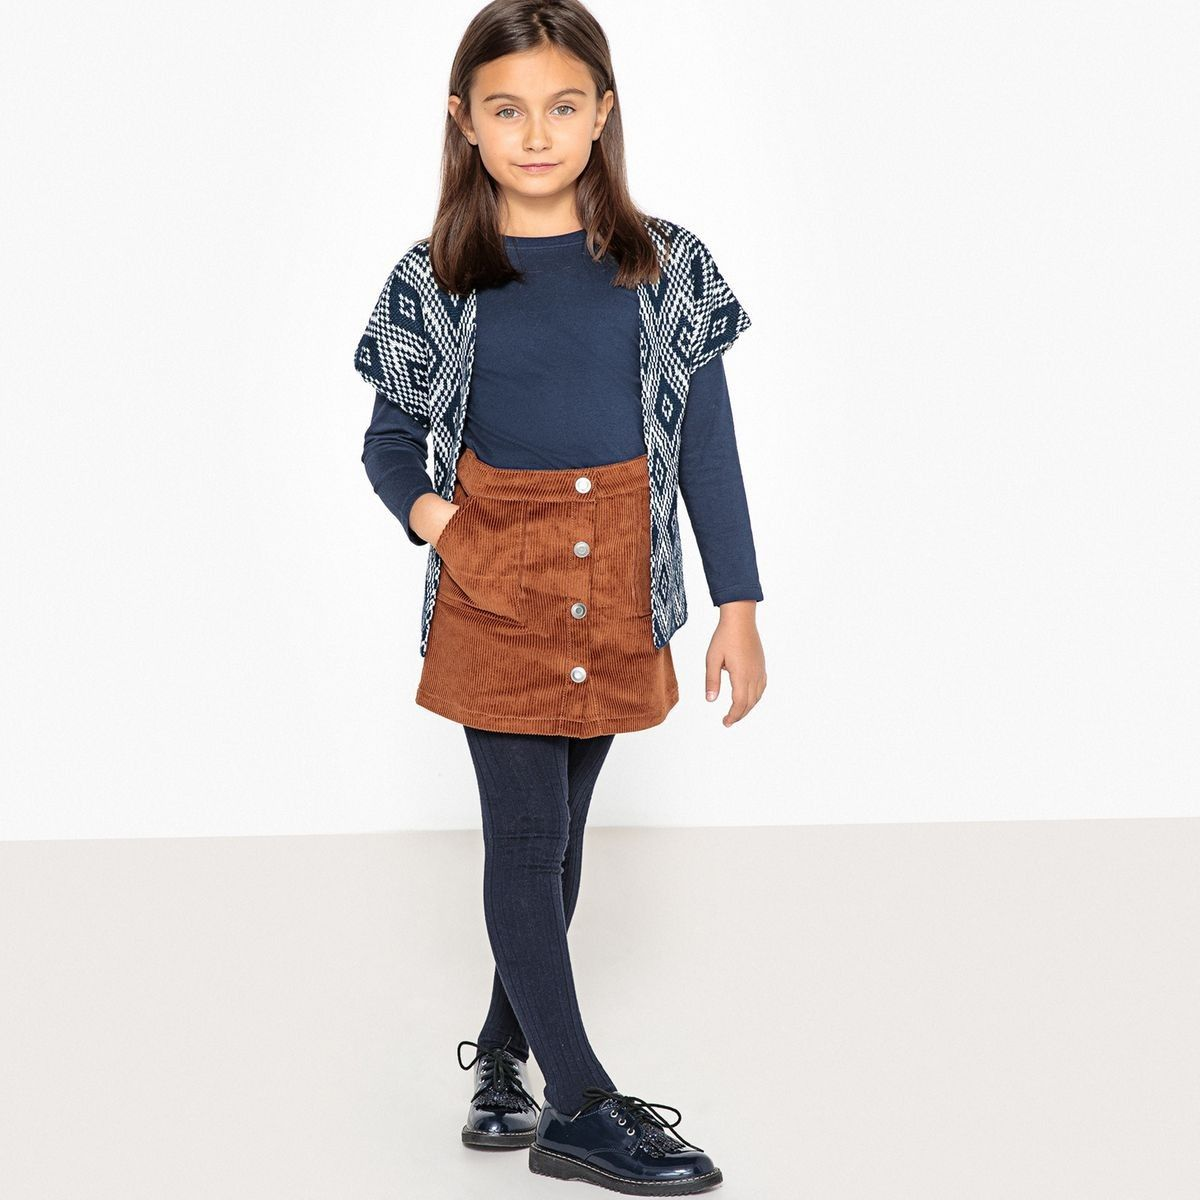 1aa1aa161a1940 Gilet Manches Courtes 3-12 Ans - Taille : 10 ans;12 ans;3 ans;4 ans ...